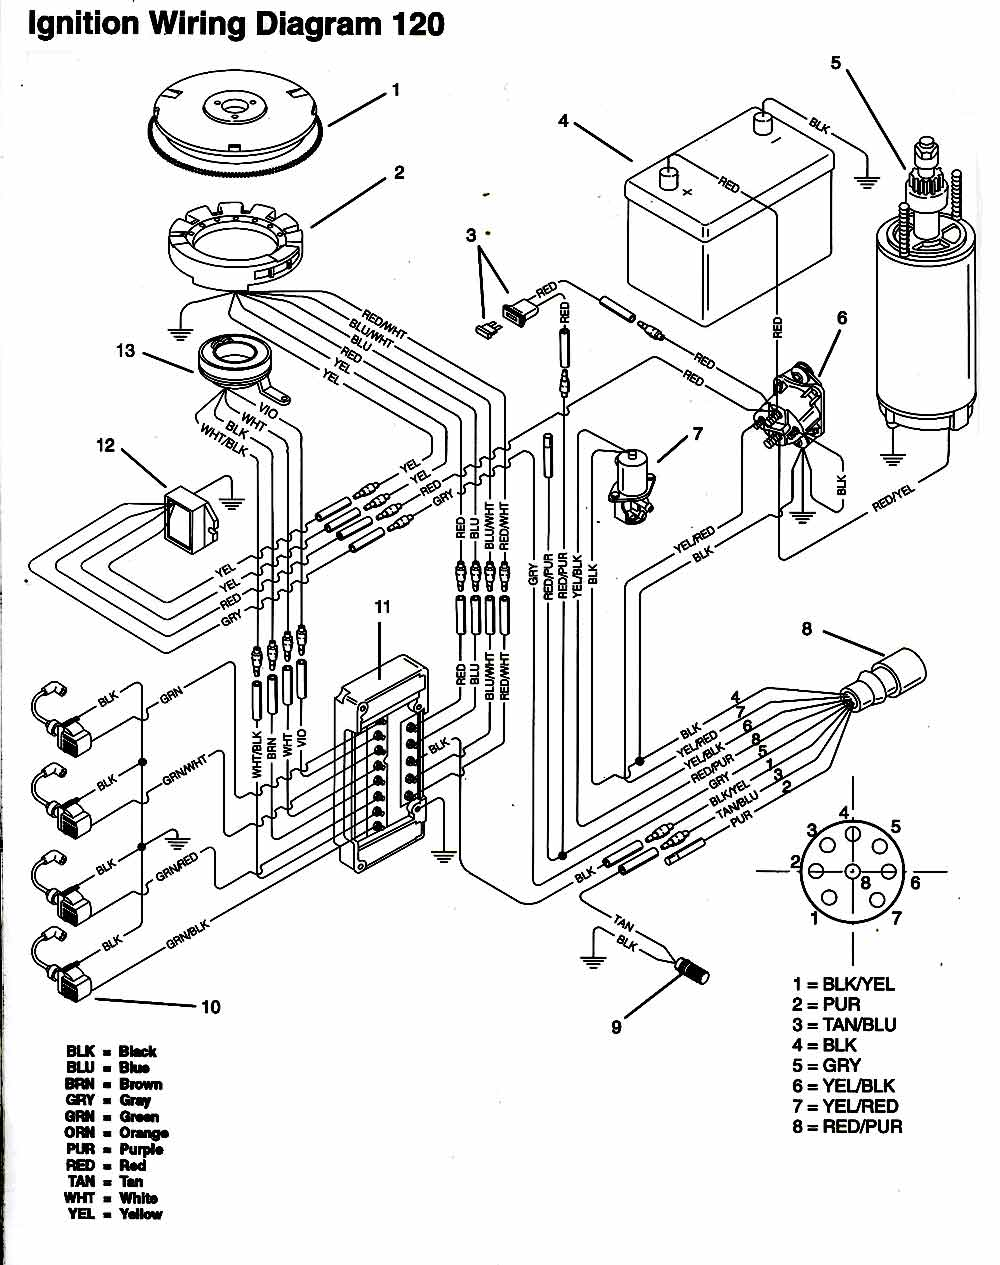 small resolution of 1991 mercury capri fuse box diagram wiring library rh 10 skriptoase de